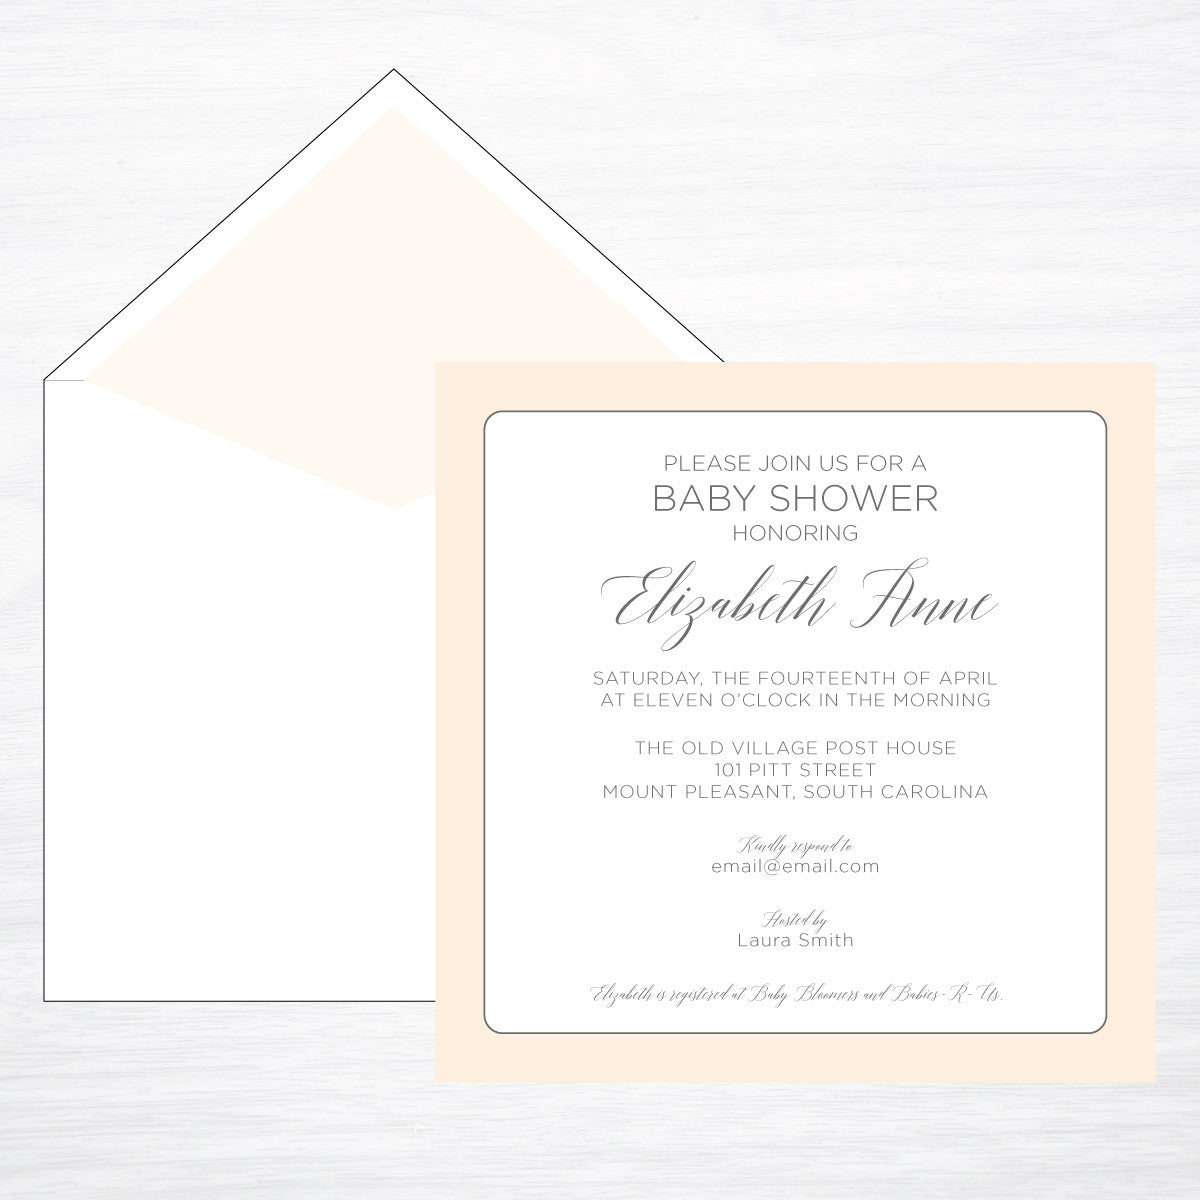 Square | Blush - shop greeting cards, handmade stationery, & wedding invitations by dodeline design